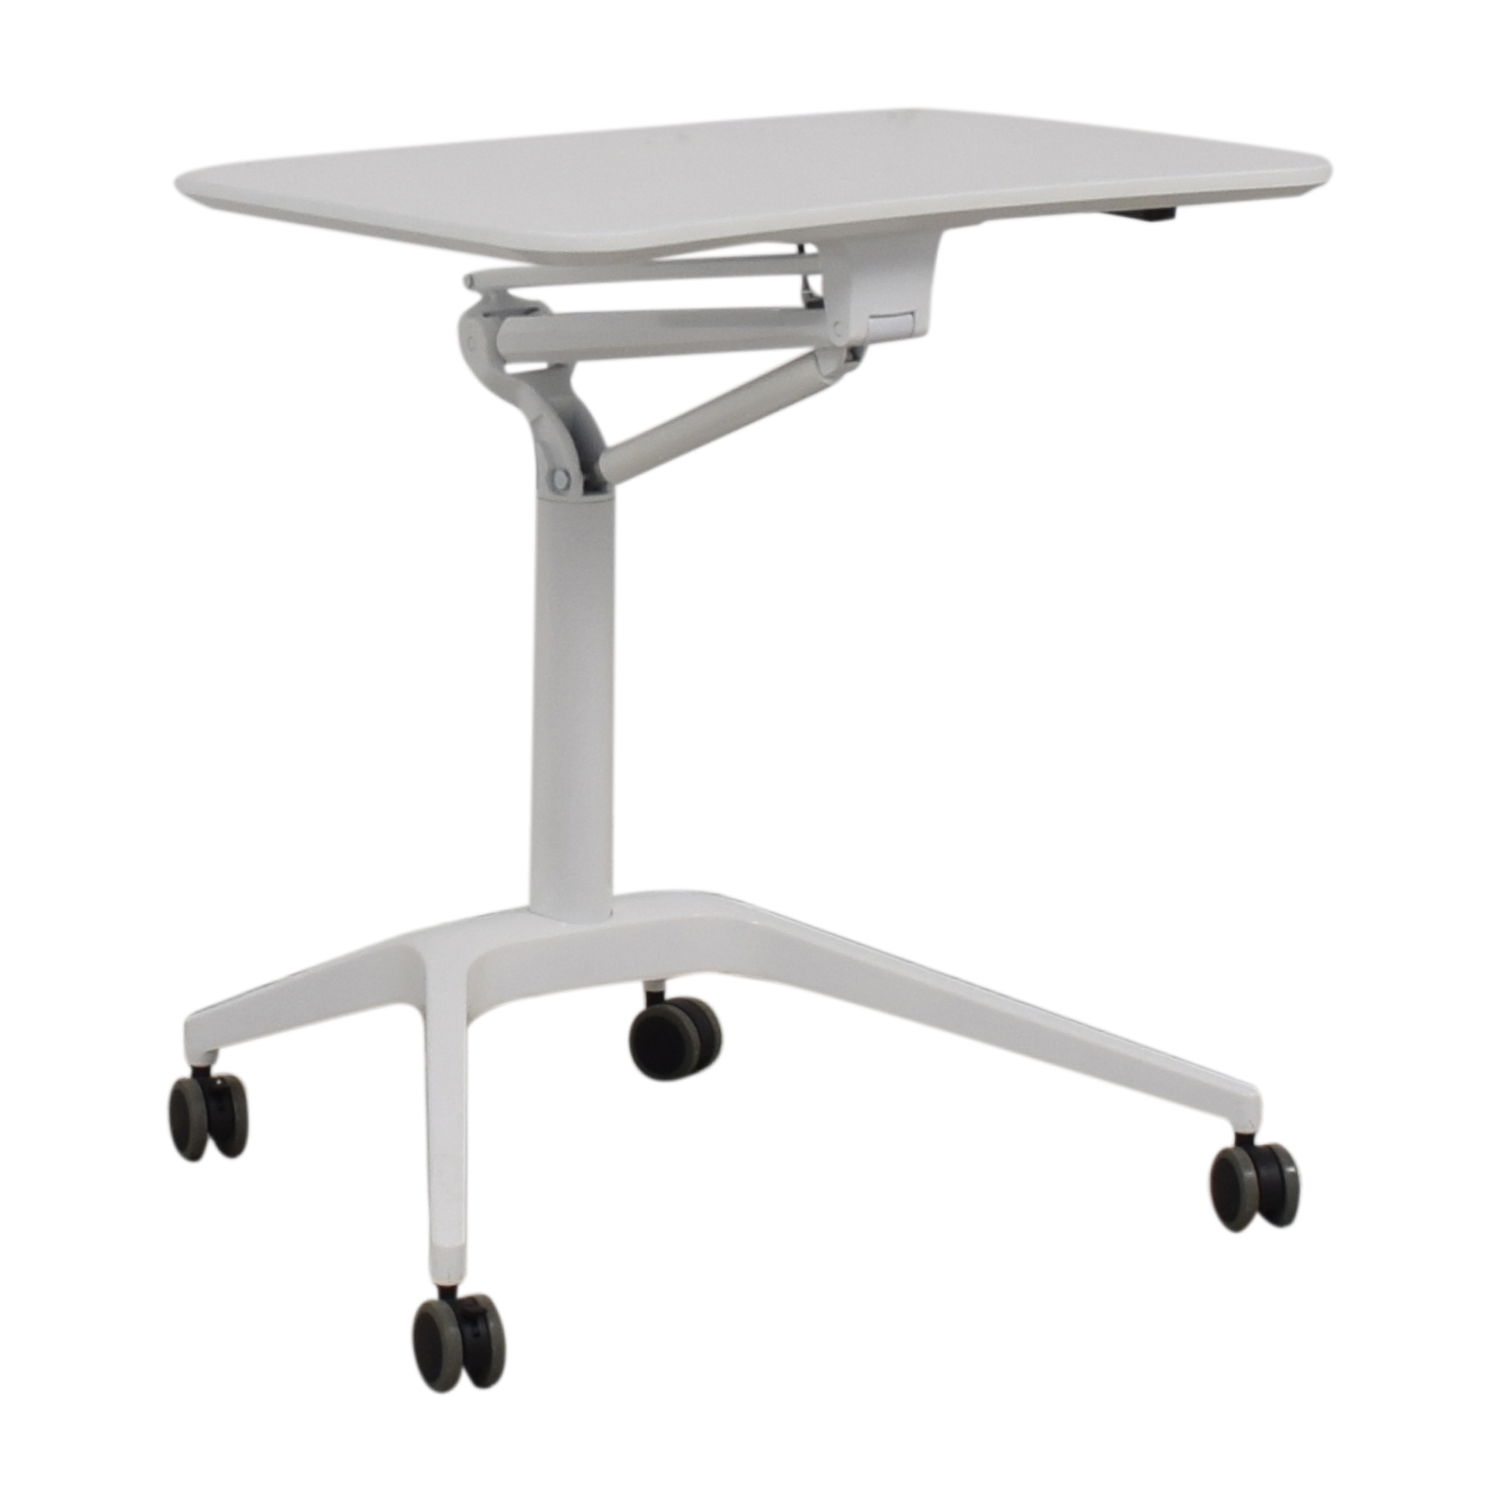 shop Container Store White Adjustable Desk Container Store